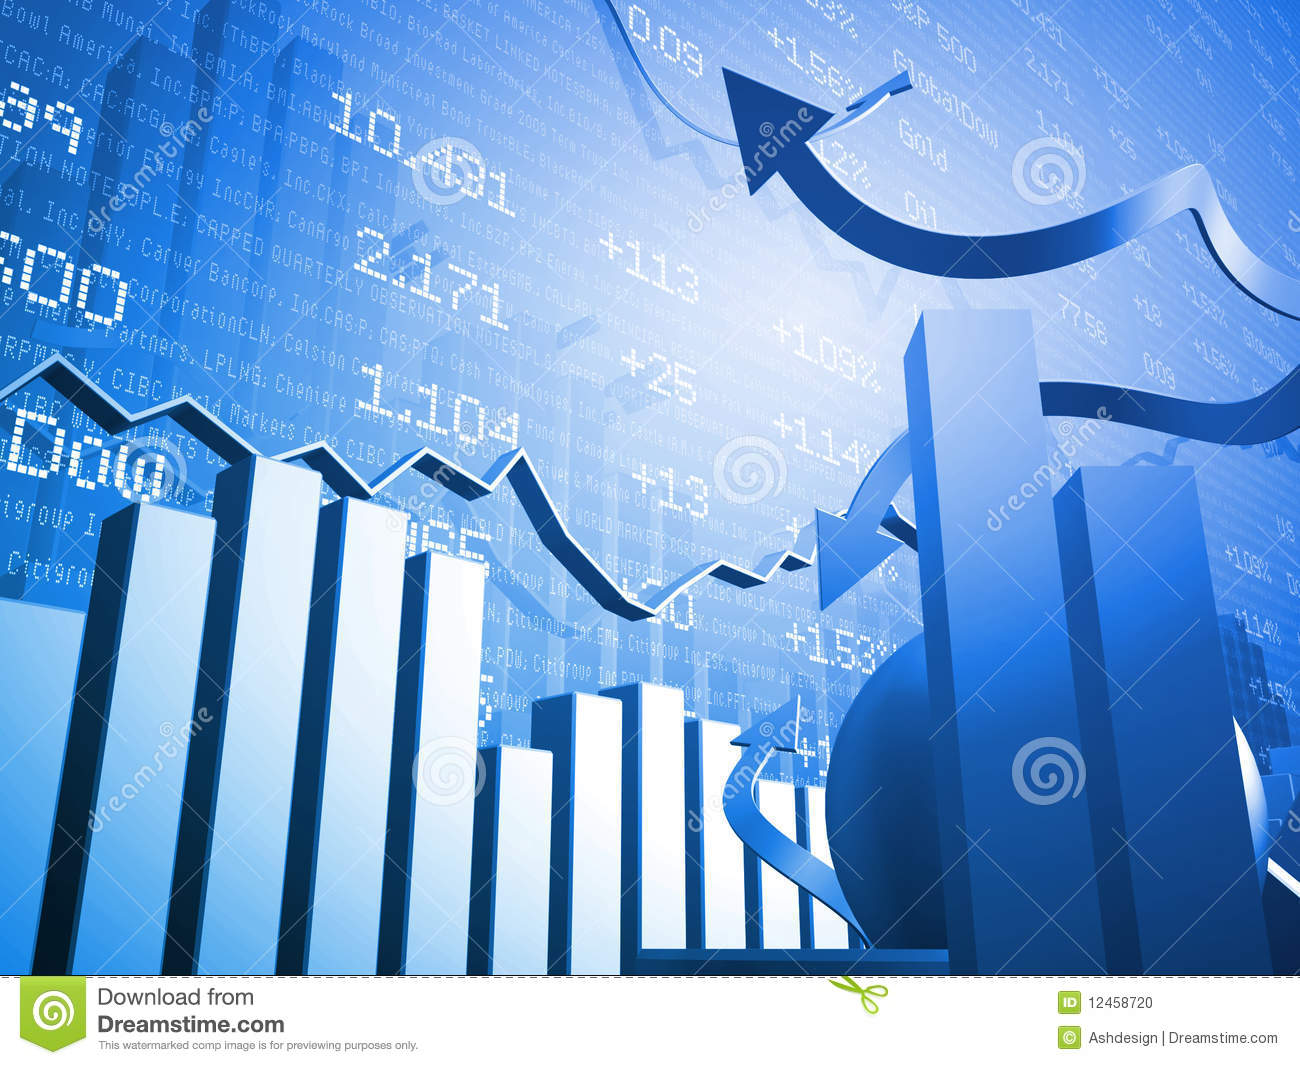 Stock Market Up And Down Arrows Stock Illustration - Illustration of money, management: 12458720